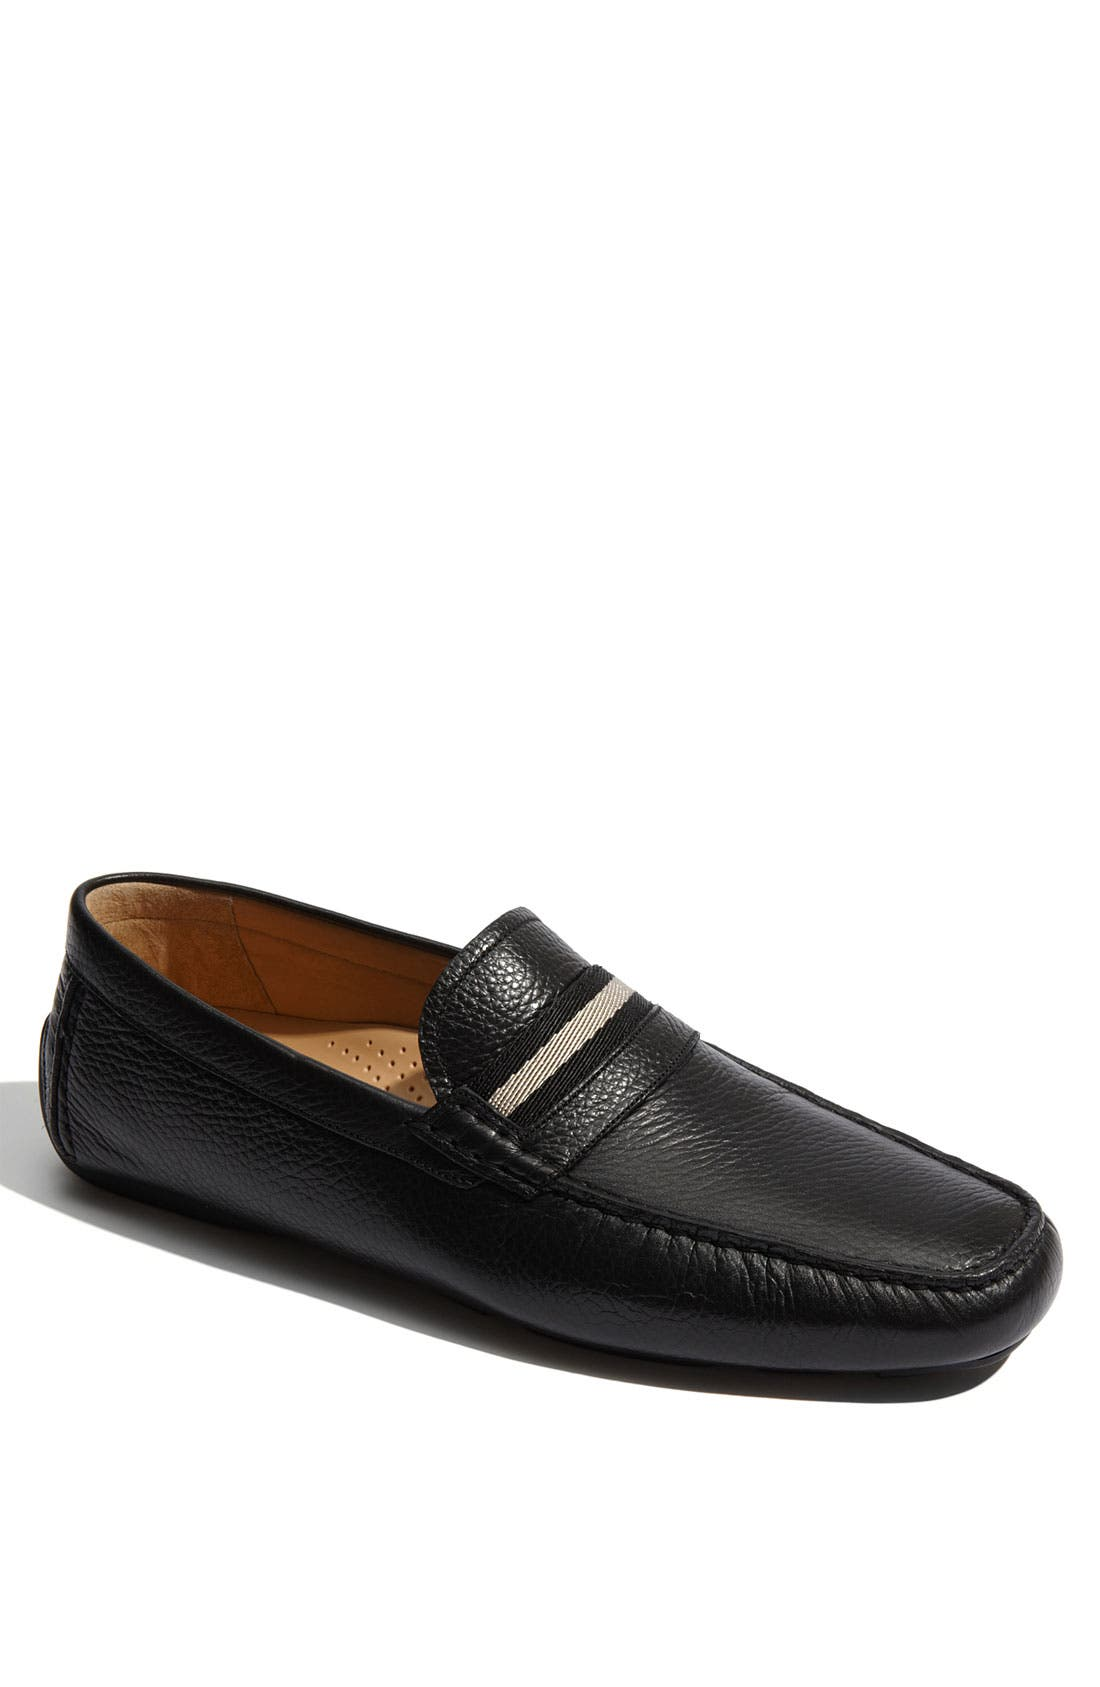 Alternate Image 1 Selected - Bally 'Wabler' Loafer (Men)